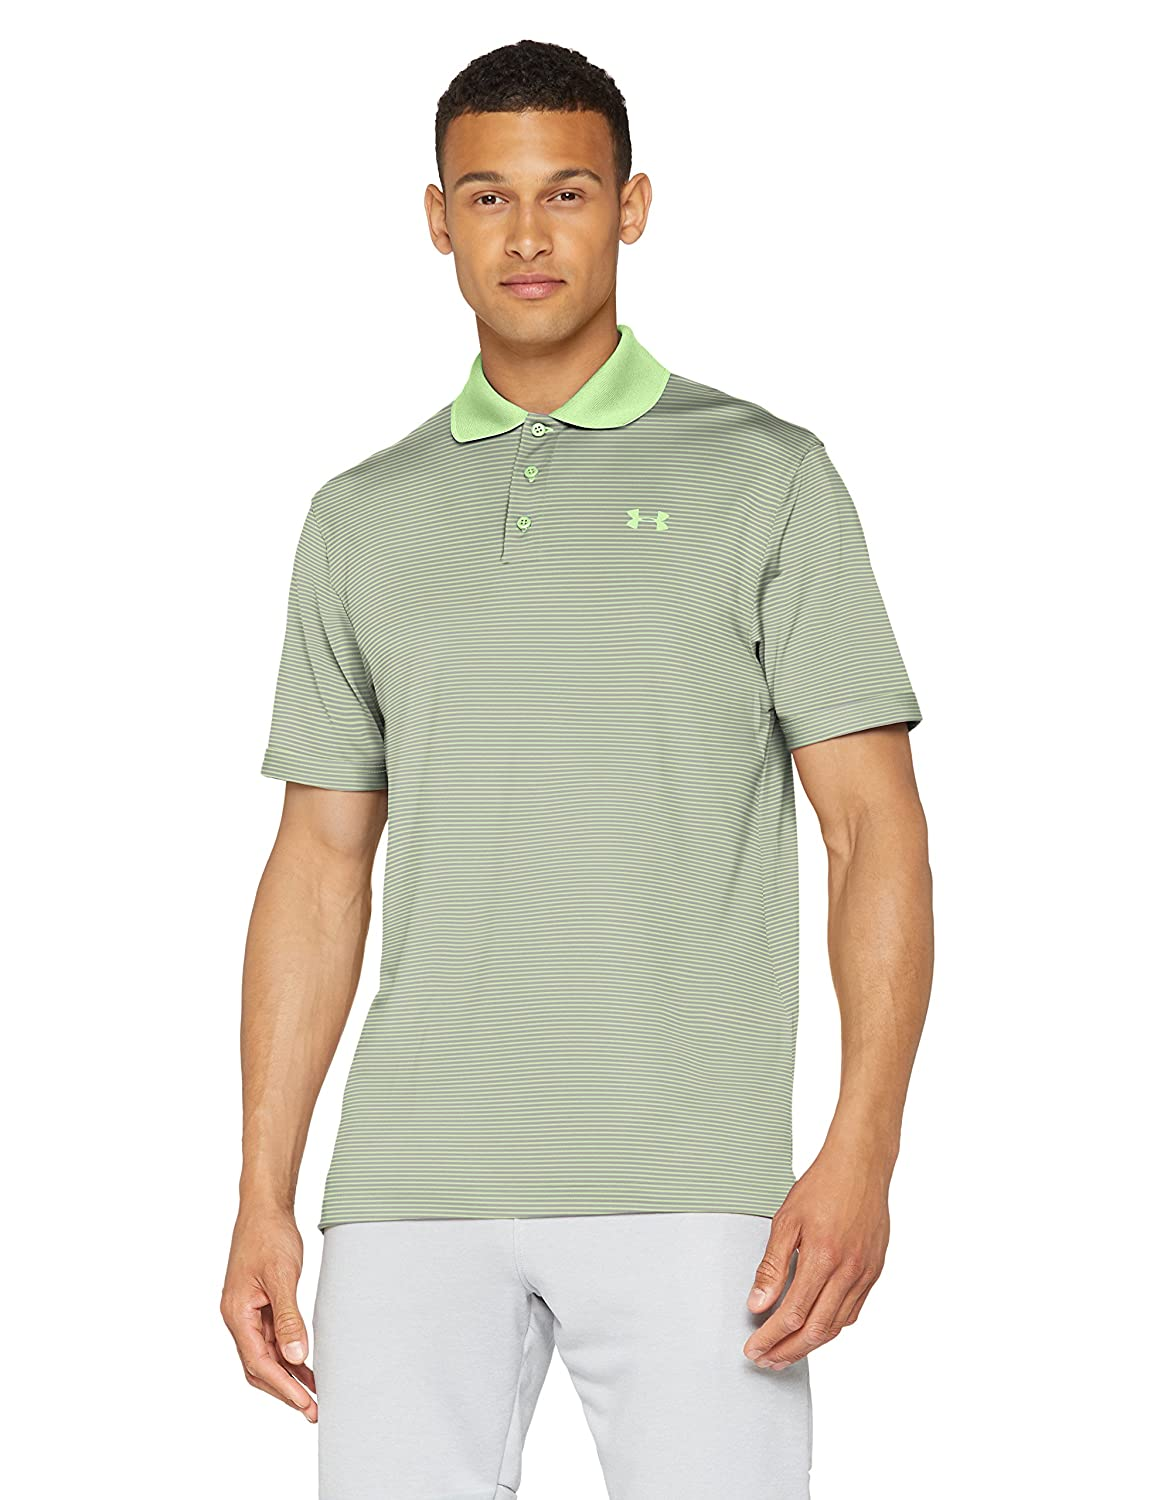 [アンダーアーマー] UA Performance Polo Novelty メンズ 1321344 B072FKLLF4 Medium|Lumos Lime (712)/Lumos Lime Lumos Lime (712)/Lumos Lime Medium